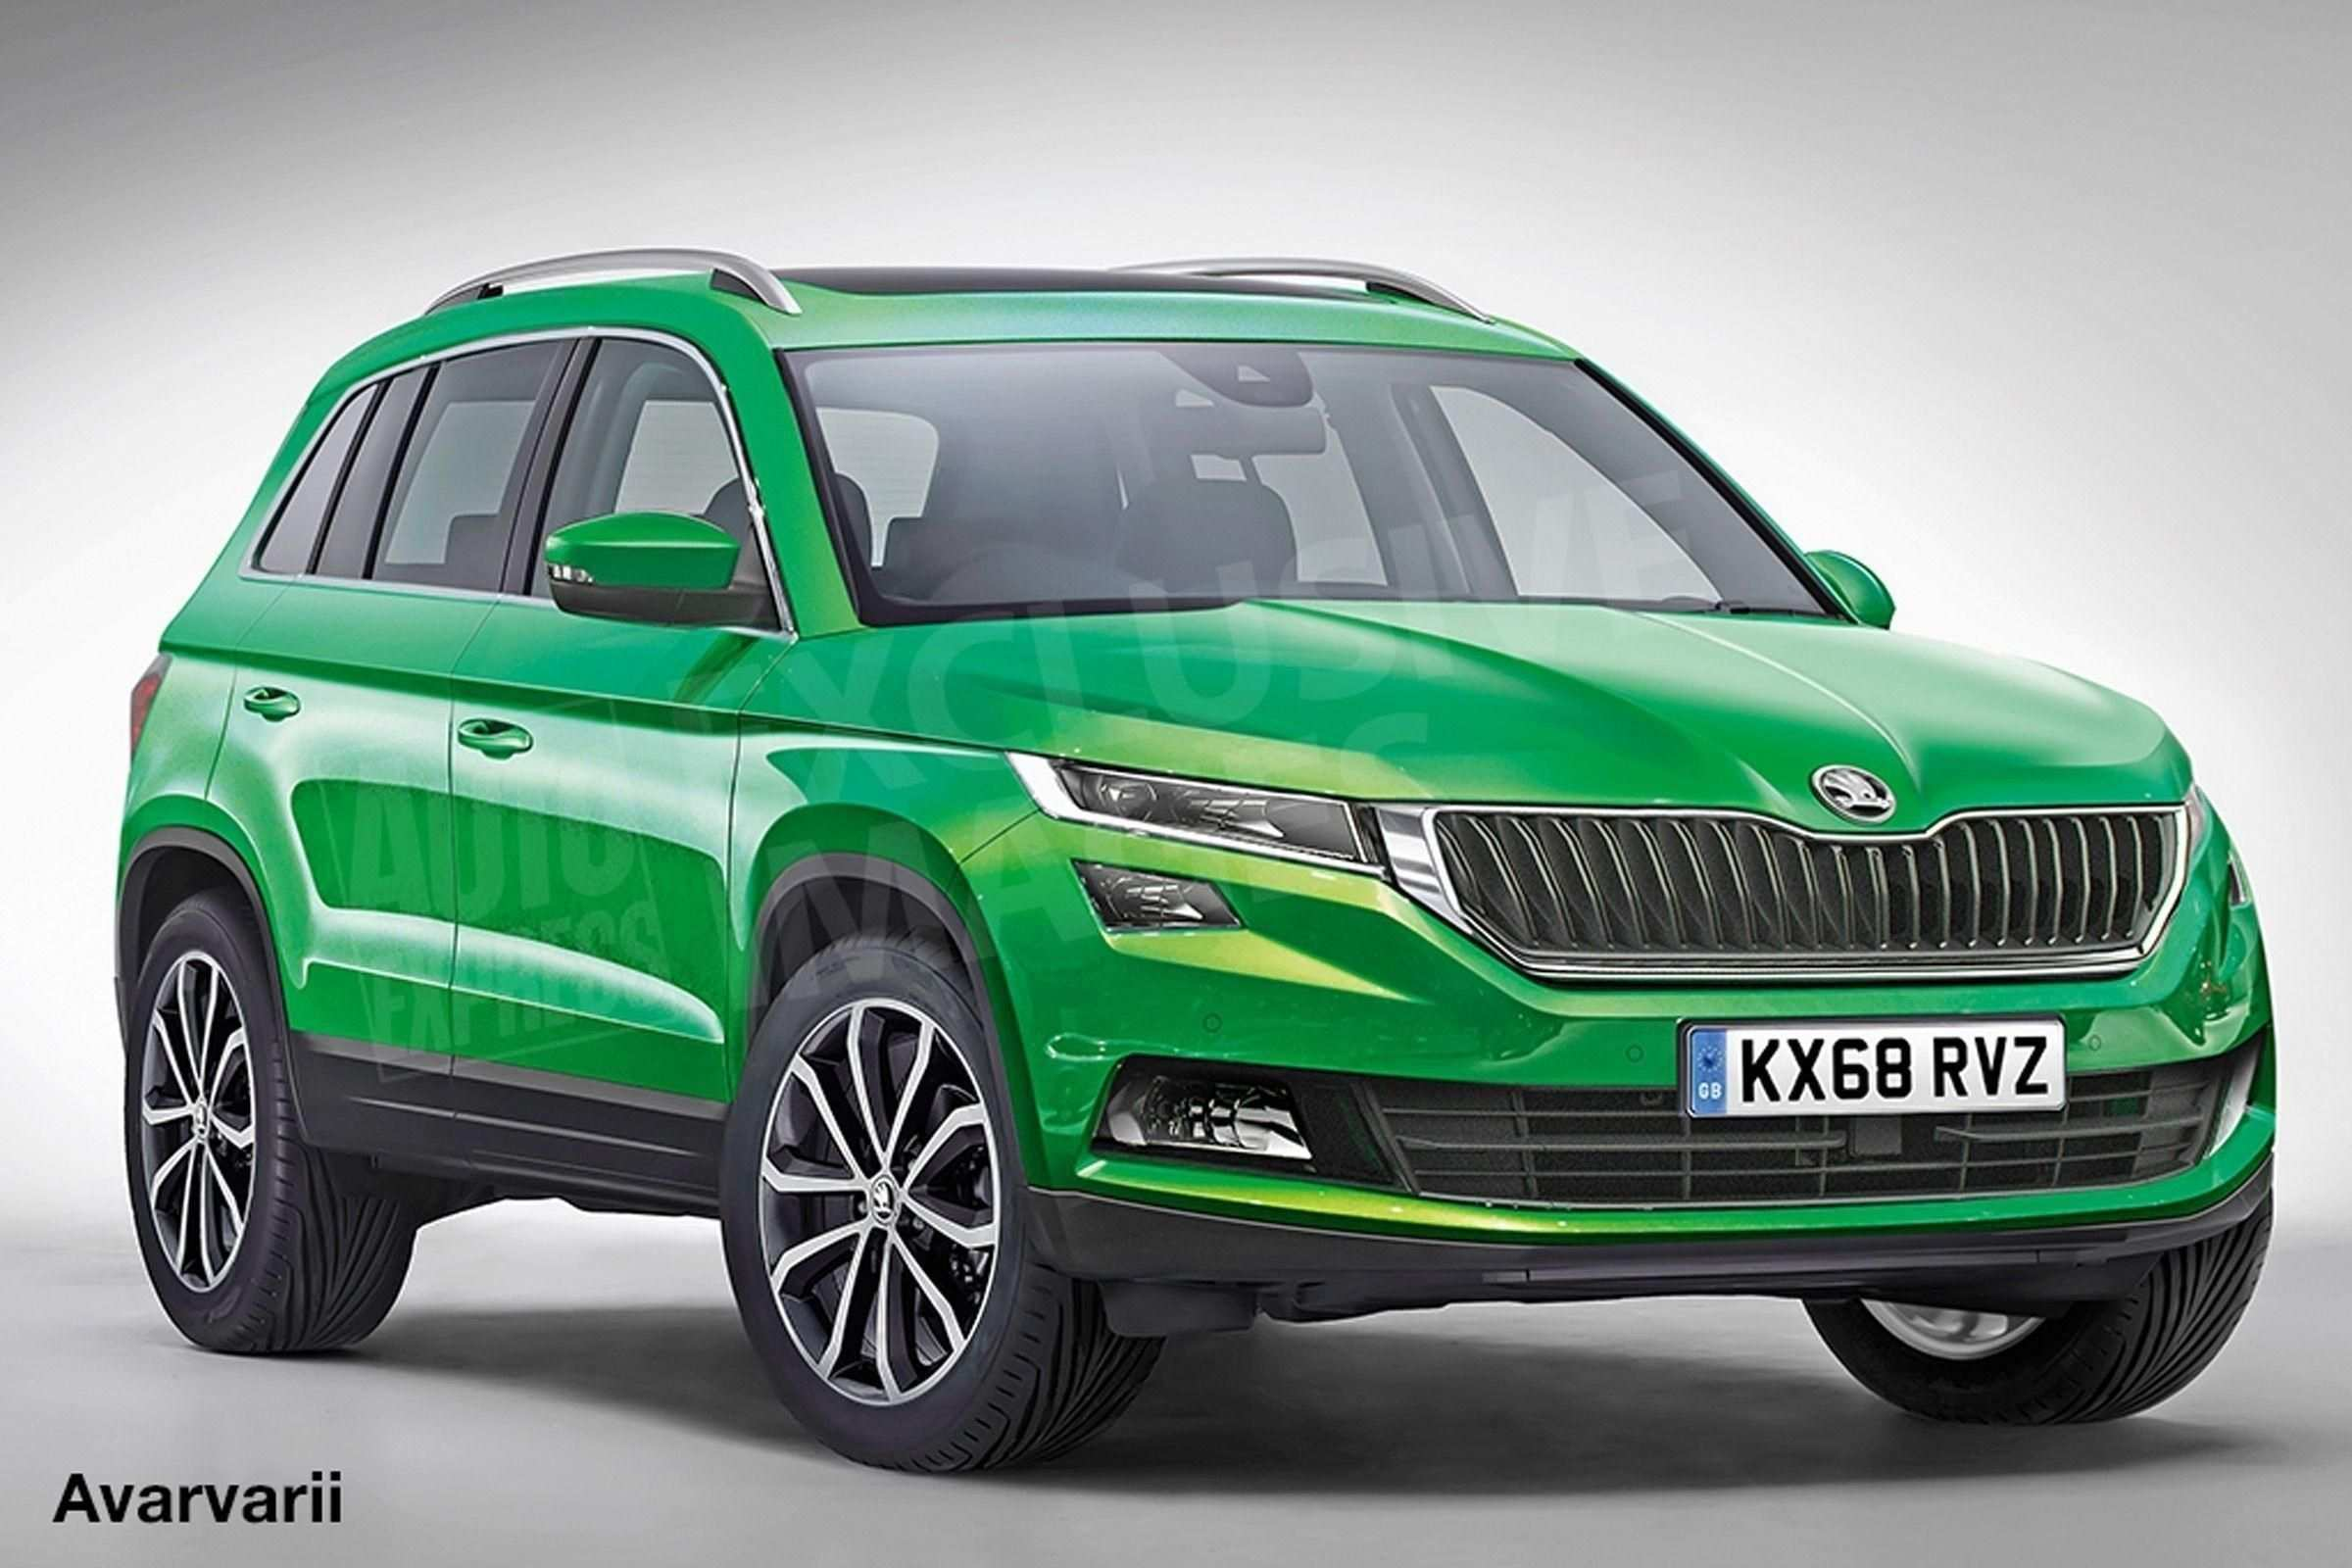 39 Concept of 2020 Skoda Snowman Full Preview Spy Shoot for 2020 Skoda Snowman Full Preview